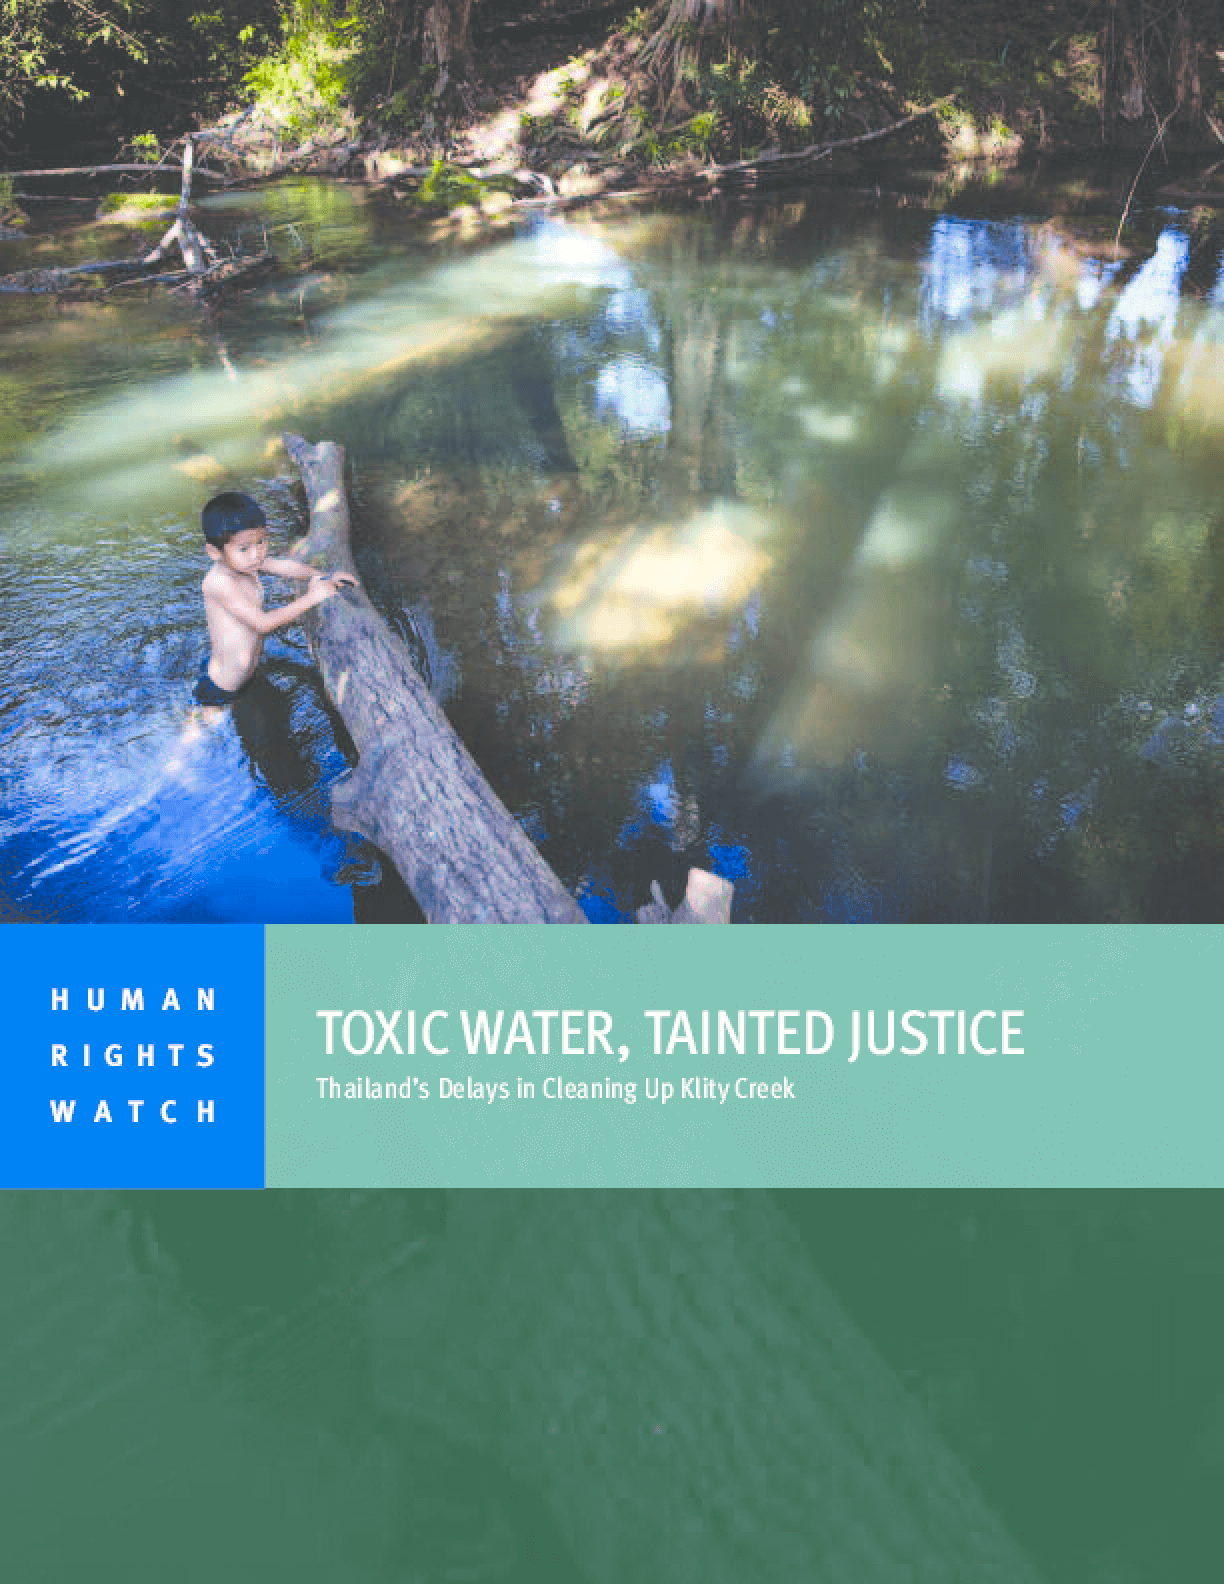 Toxic Water, Tainted Justice: Thailand's Delays in Cleaning Up Klity Creek